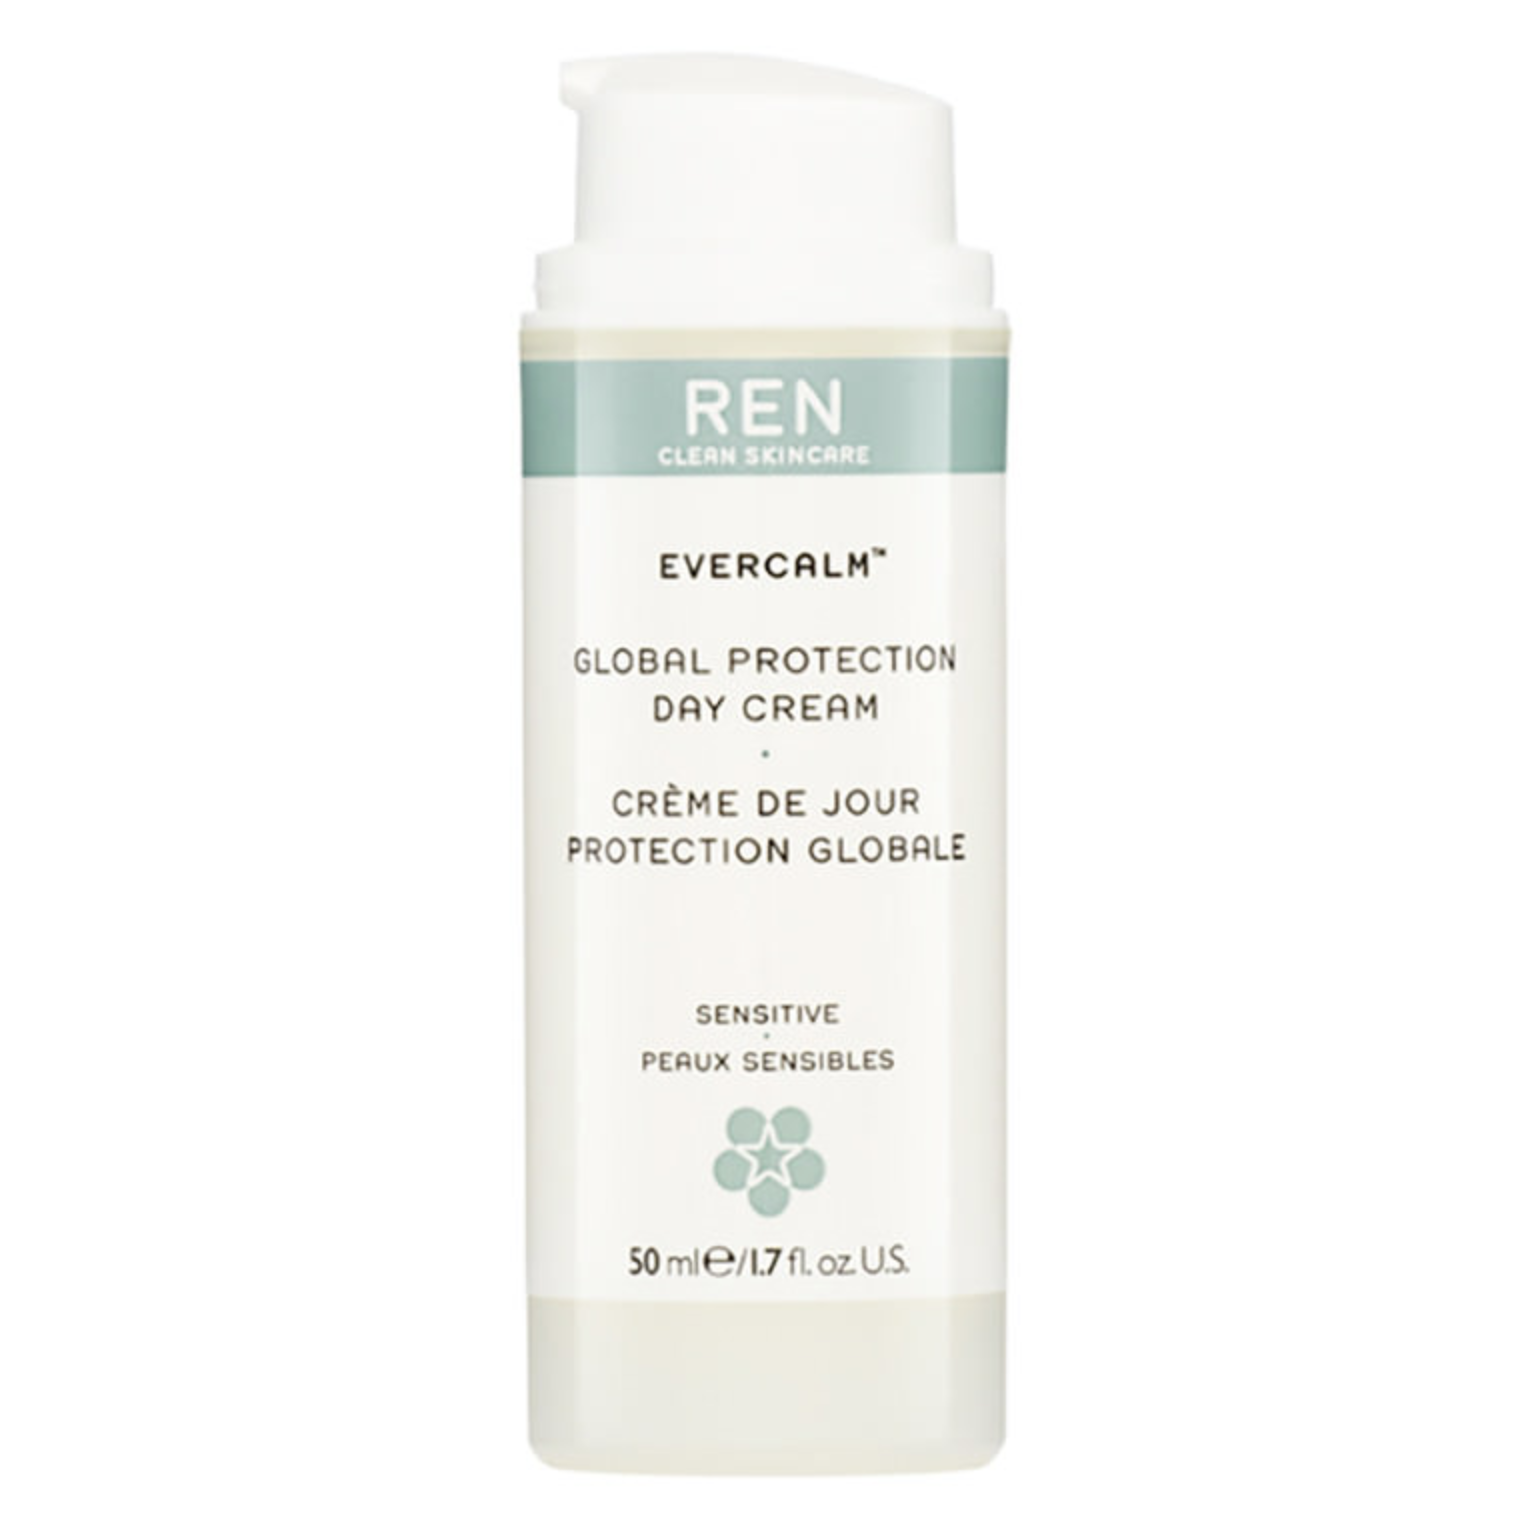 ren day cream.png